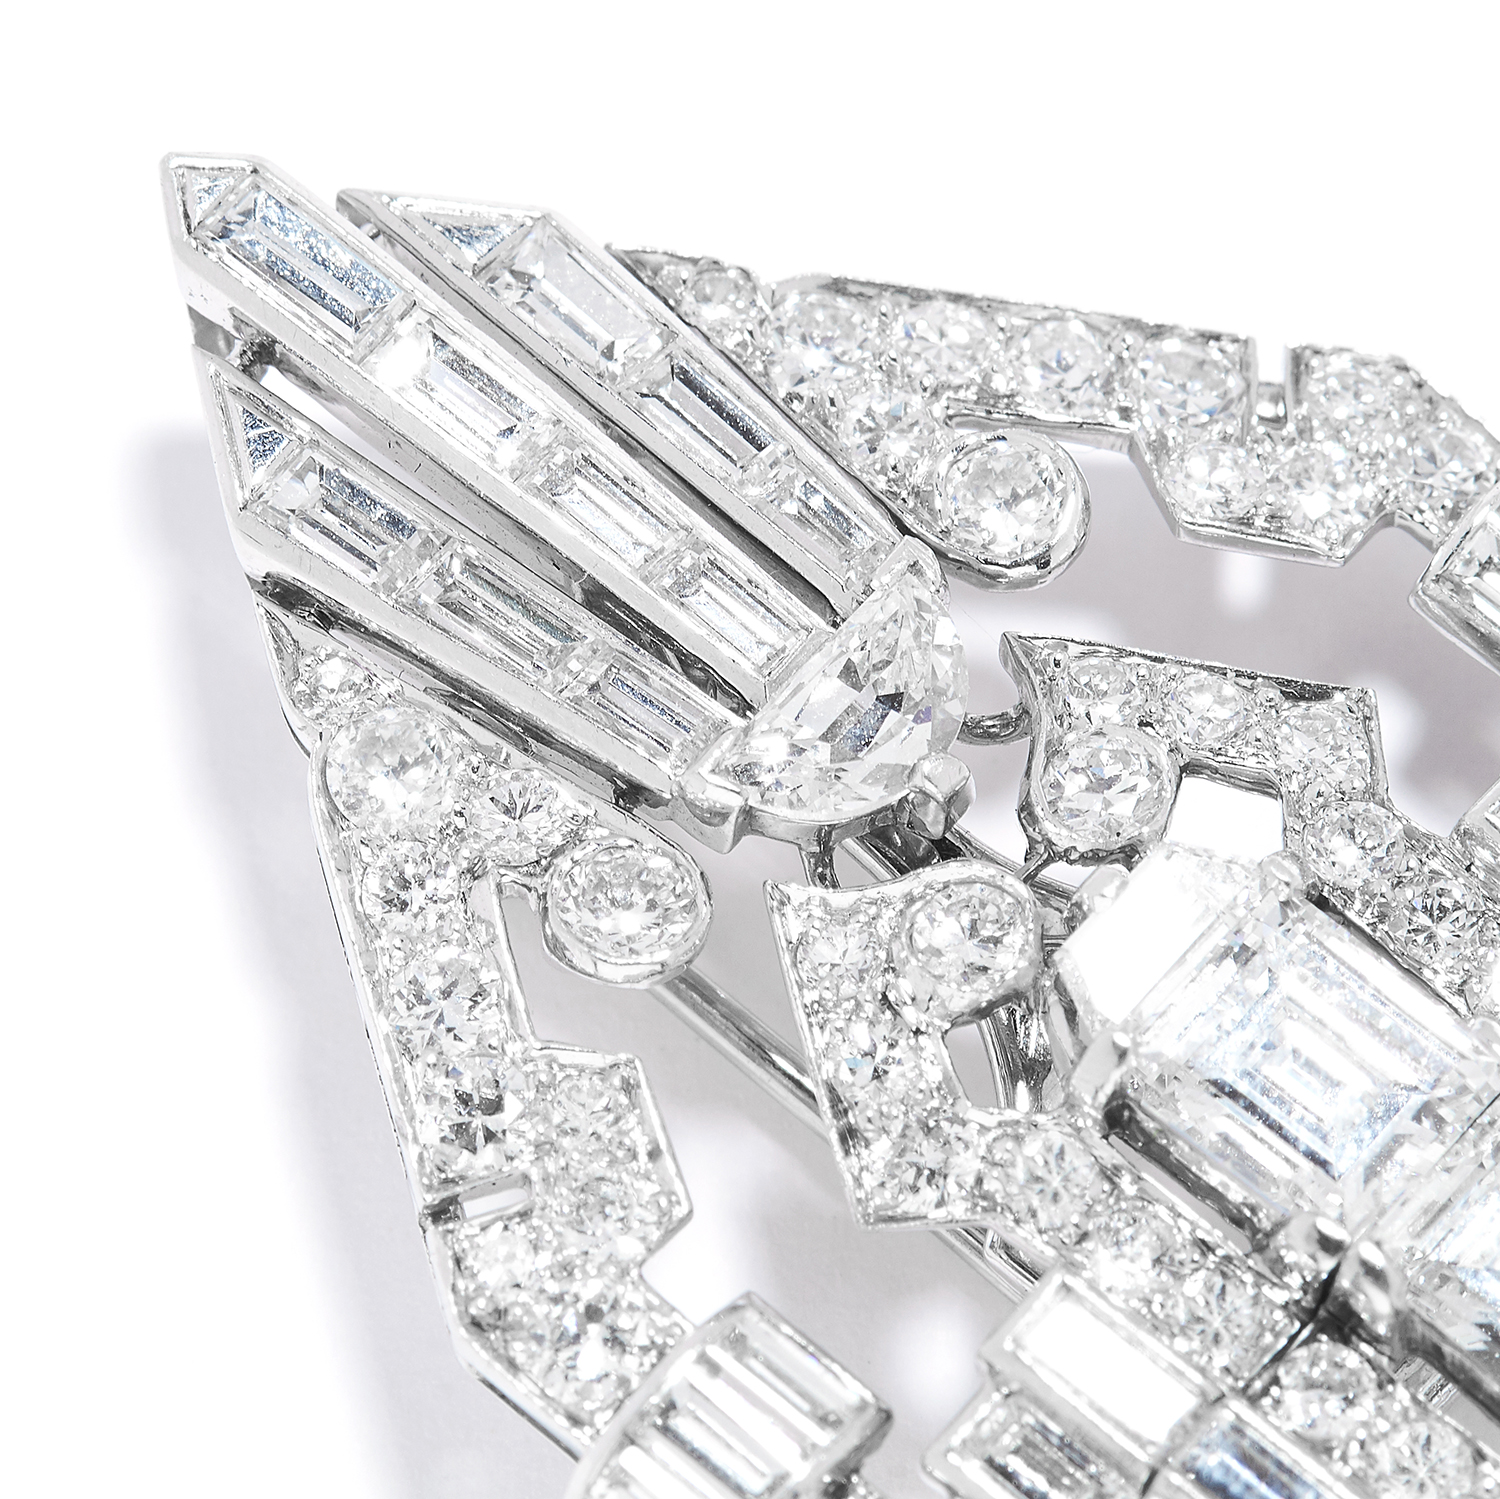 ANTIQUE DIAMOND DOUBLE CLIP BROOCH, CARTIER in platinum, the art deco design set with round, - Image 2 of 2